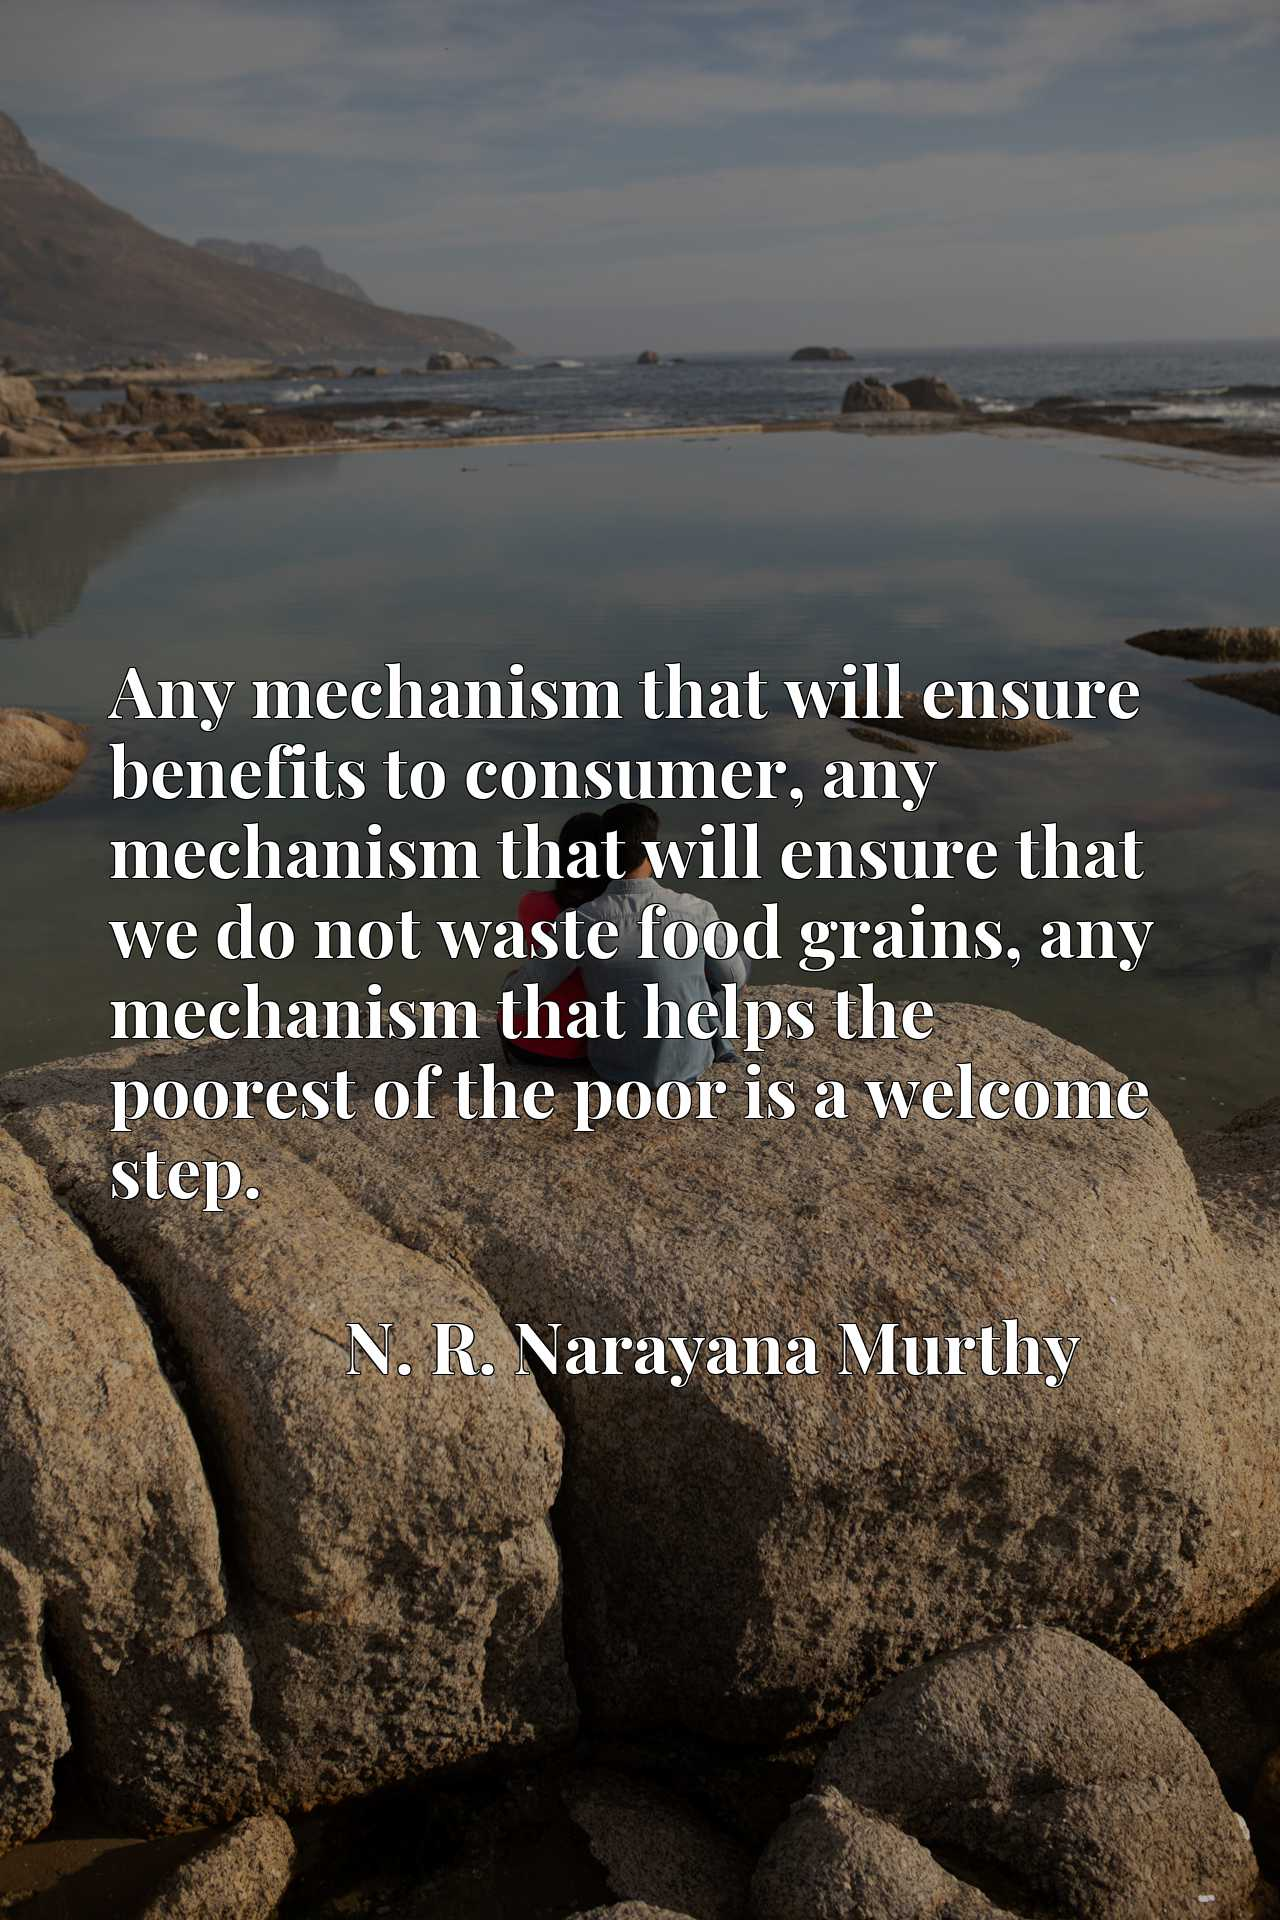 Any mechanism that will ensure benefits to consumer, any mechanism that will ensure that we do not waste food grains, any mechanism that helps the poorest of the poor is a welcome step.